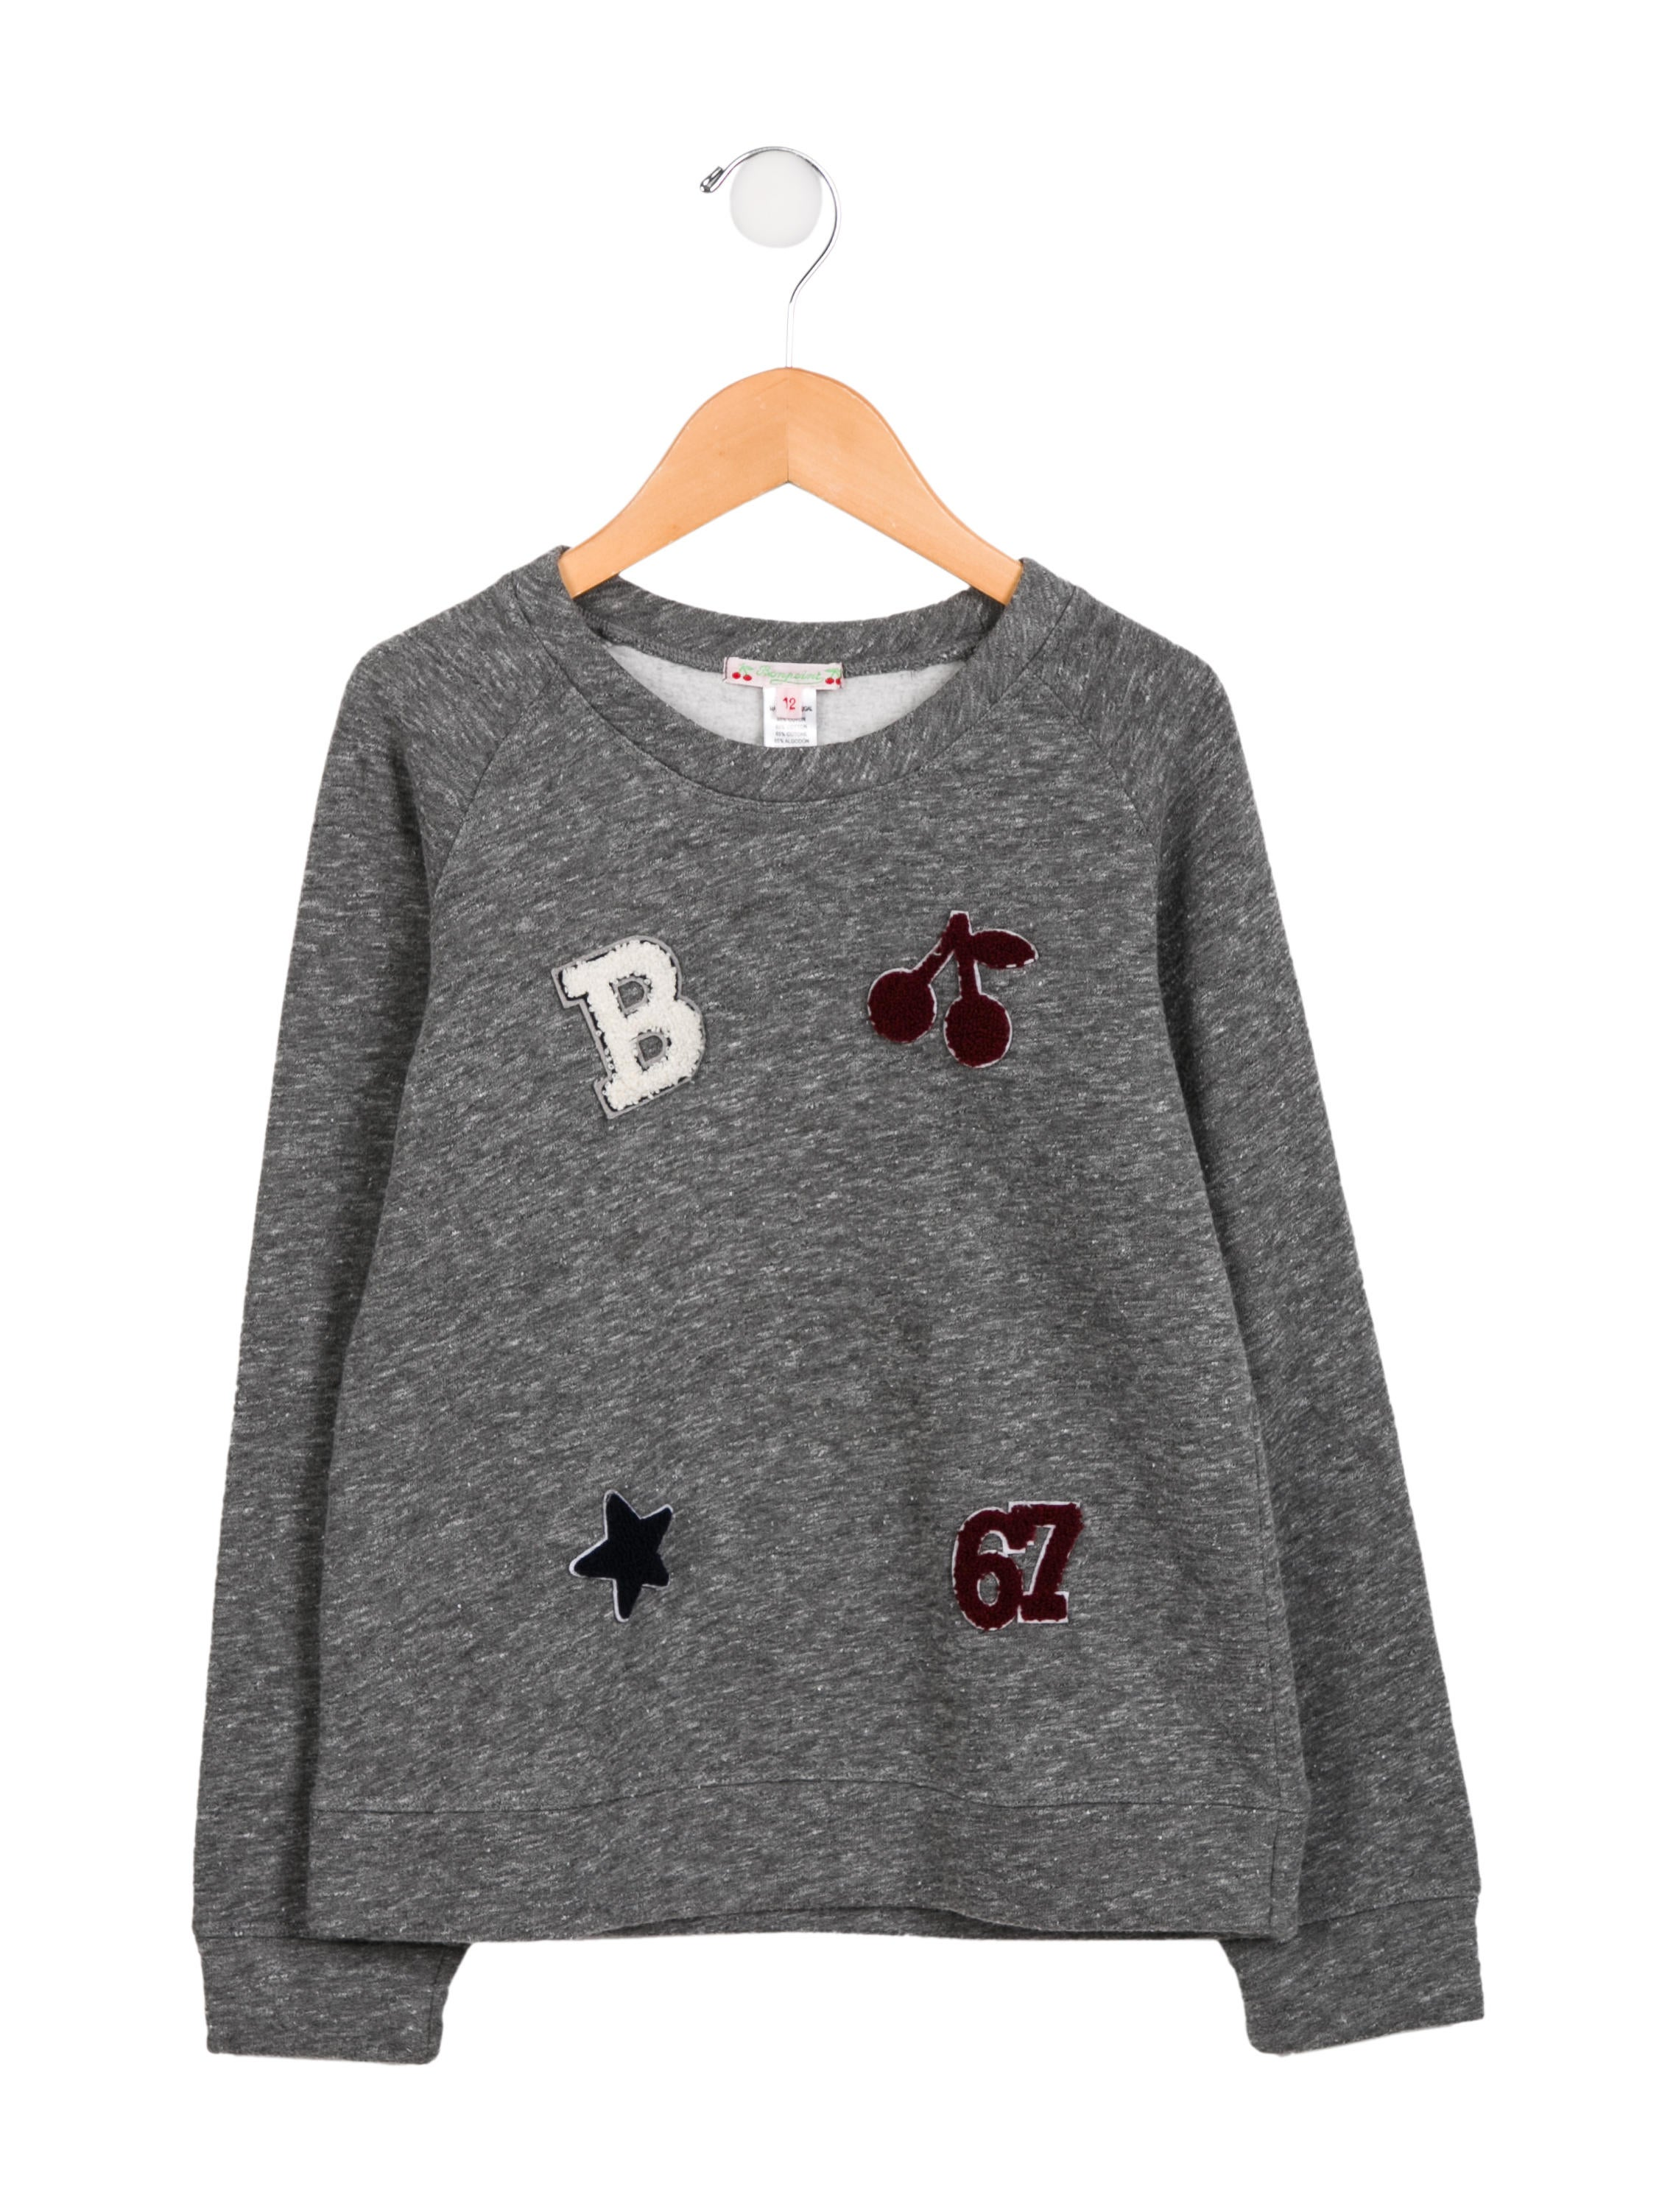 678d7492d Bonpoint Girls  Printed Crew Neck Sweatshirt - Girls - WBONP33845 ...